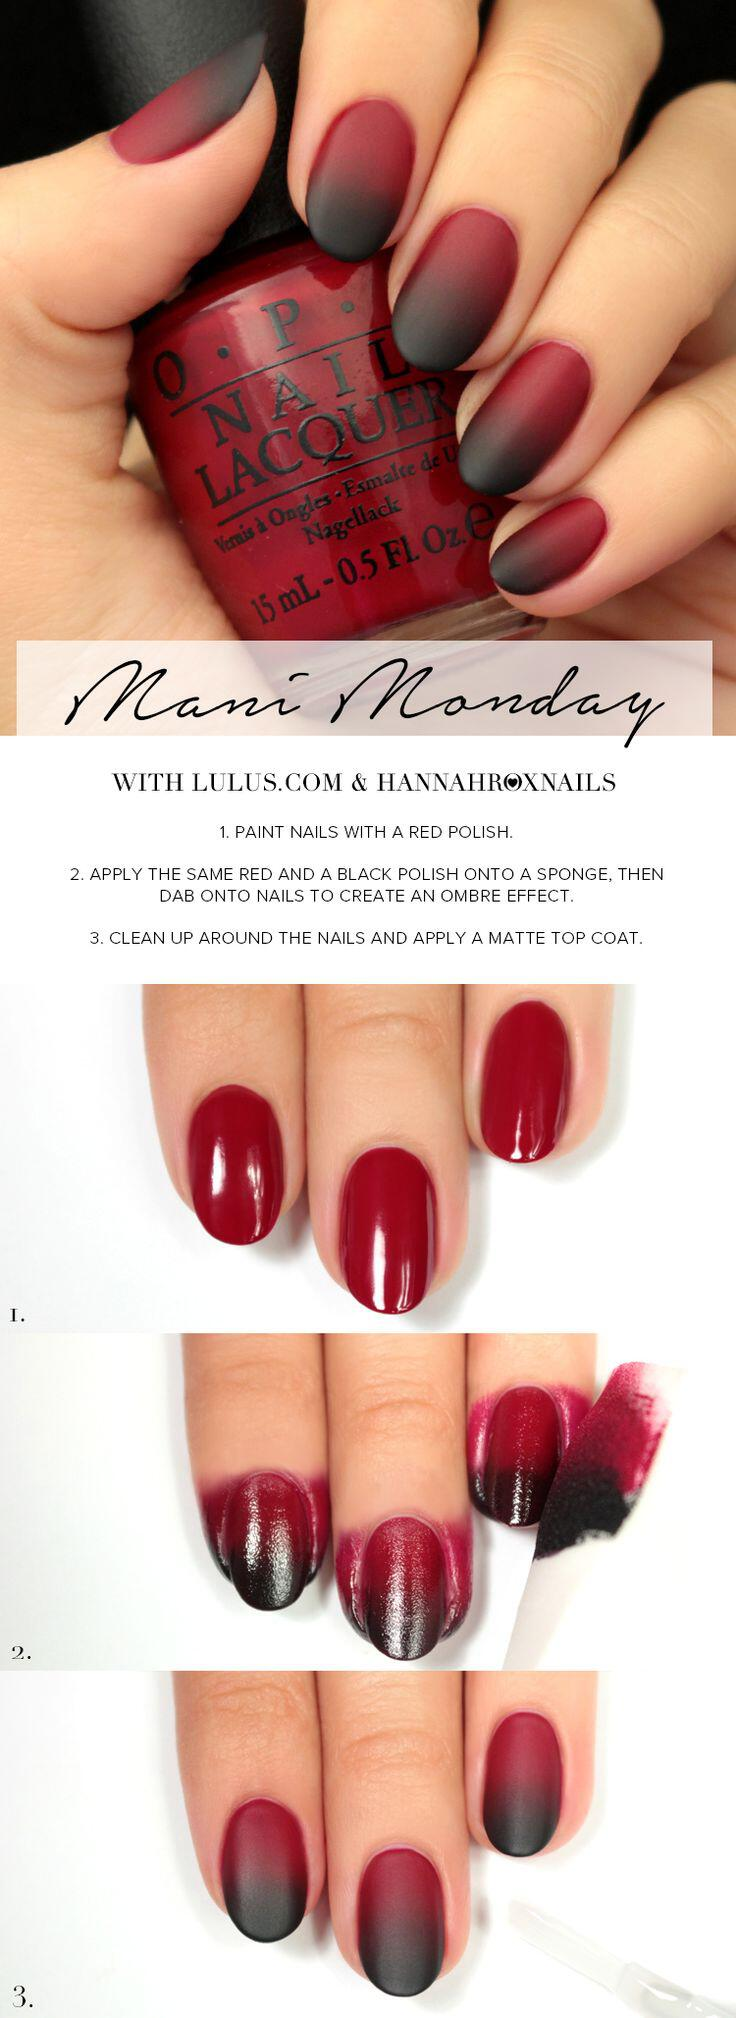 51-ideas-black-red-nails